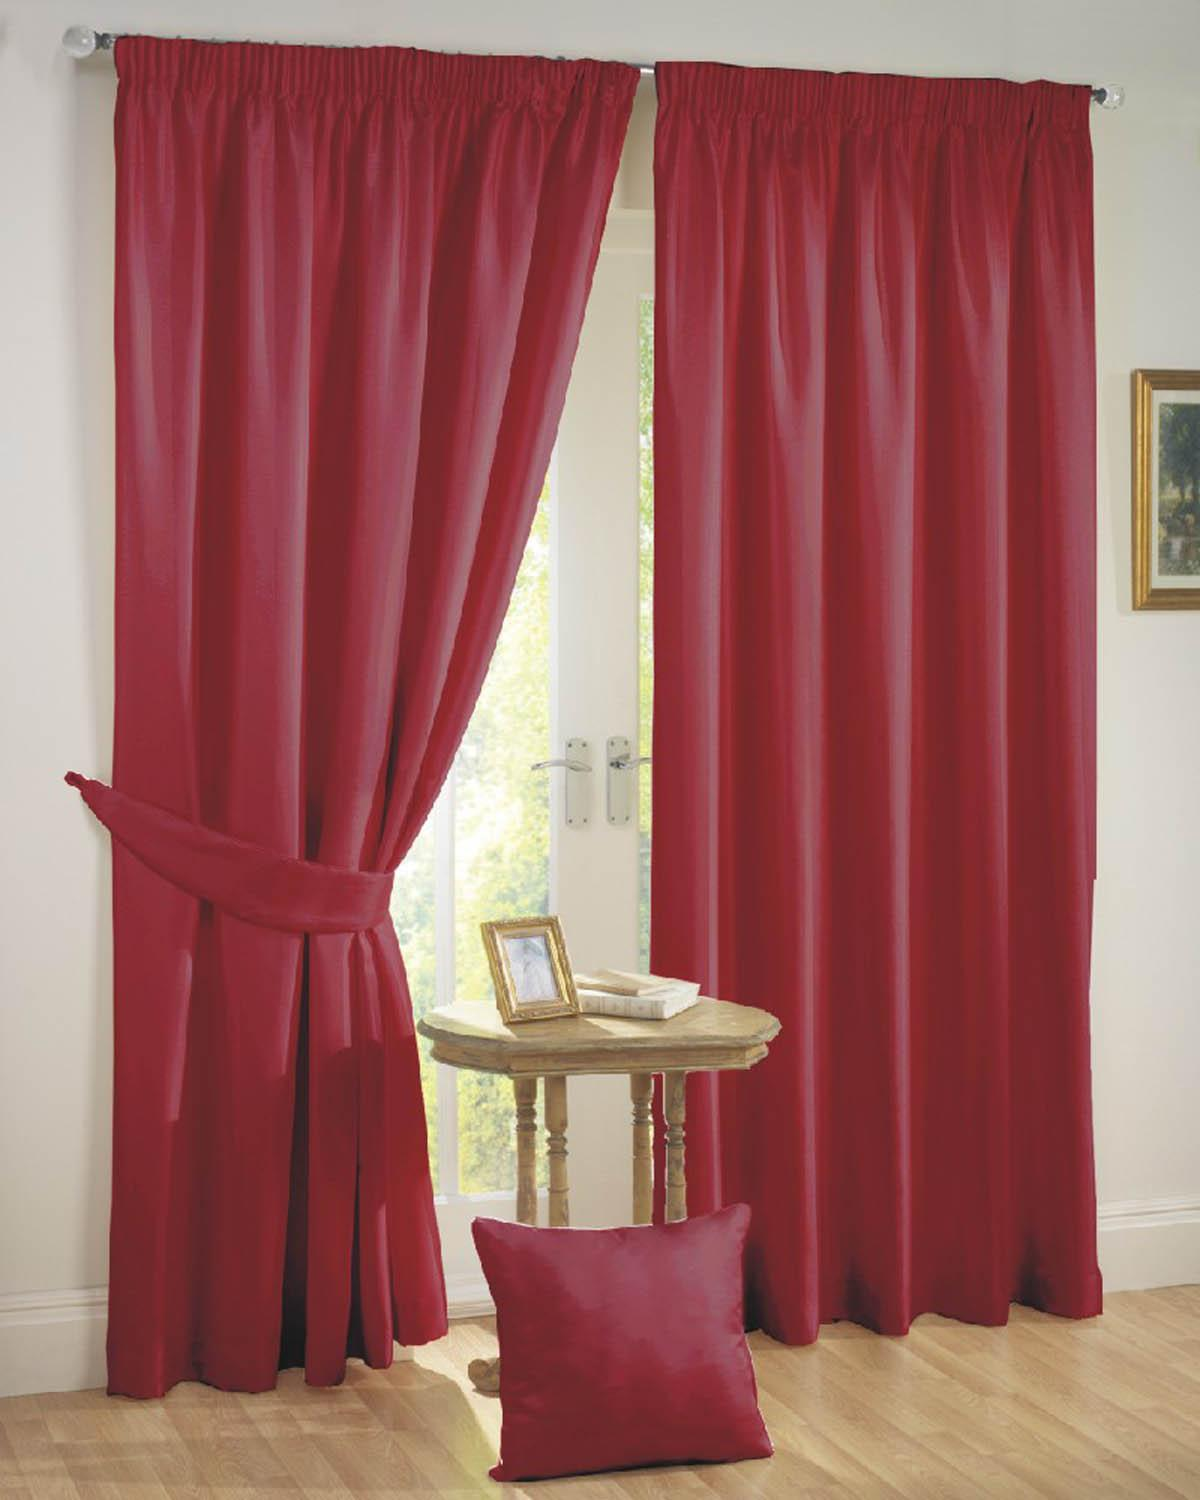 Sunset Ready Made Curtains Red Free UK Delivery Terrys